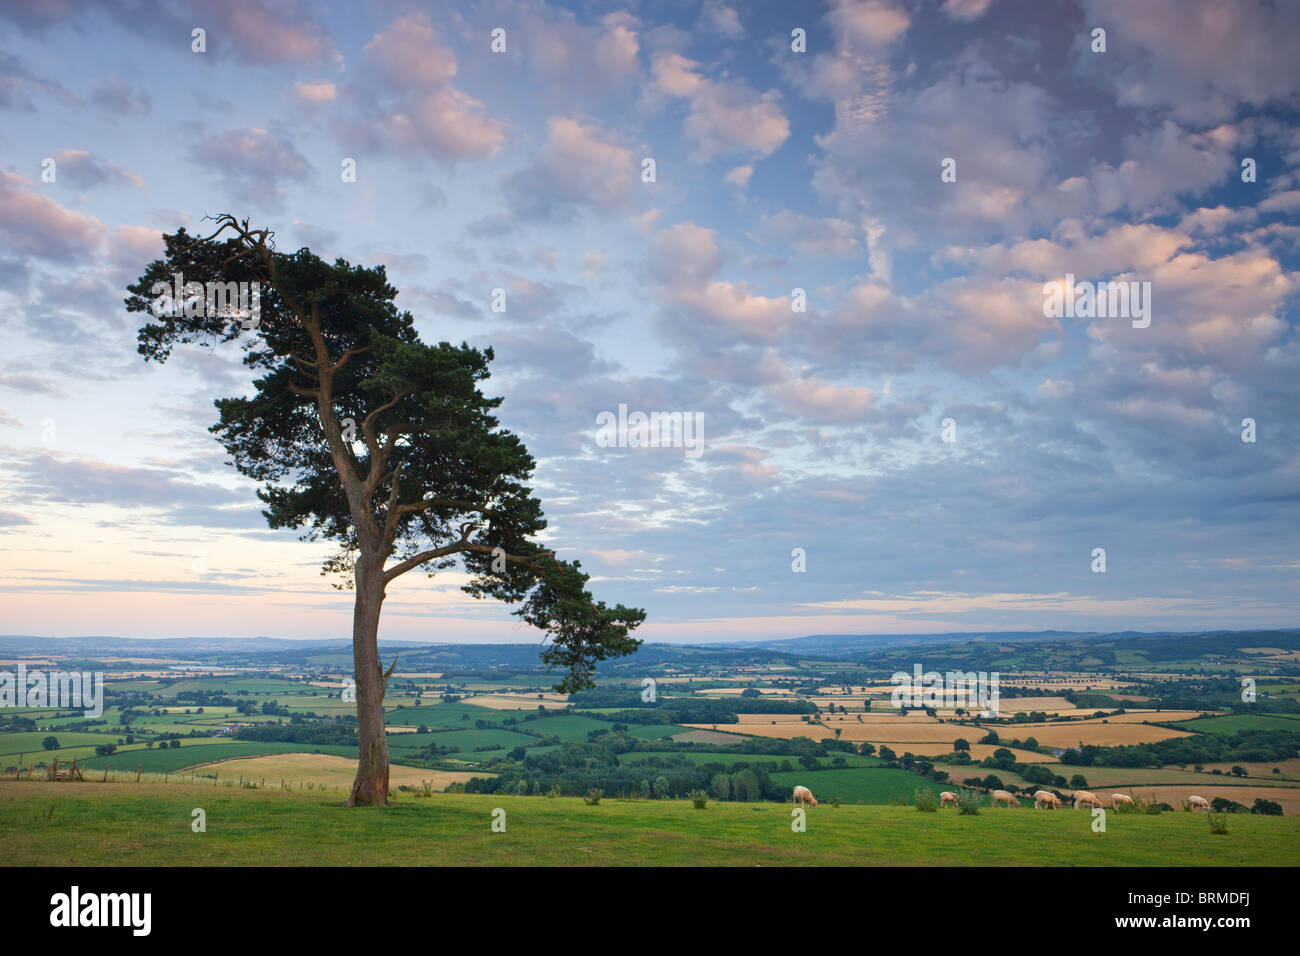 Pine tree on Raddon Hill, looking over agricultural countryside, Mid Devon, England. Summer (July) 2010. - Stock Image